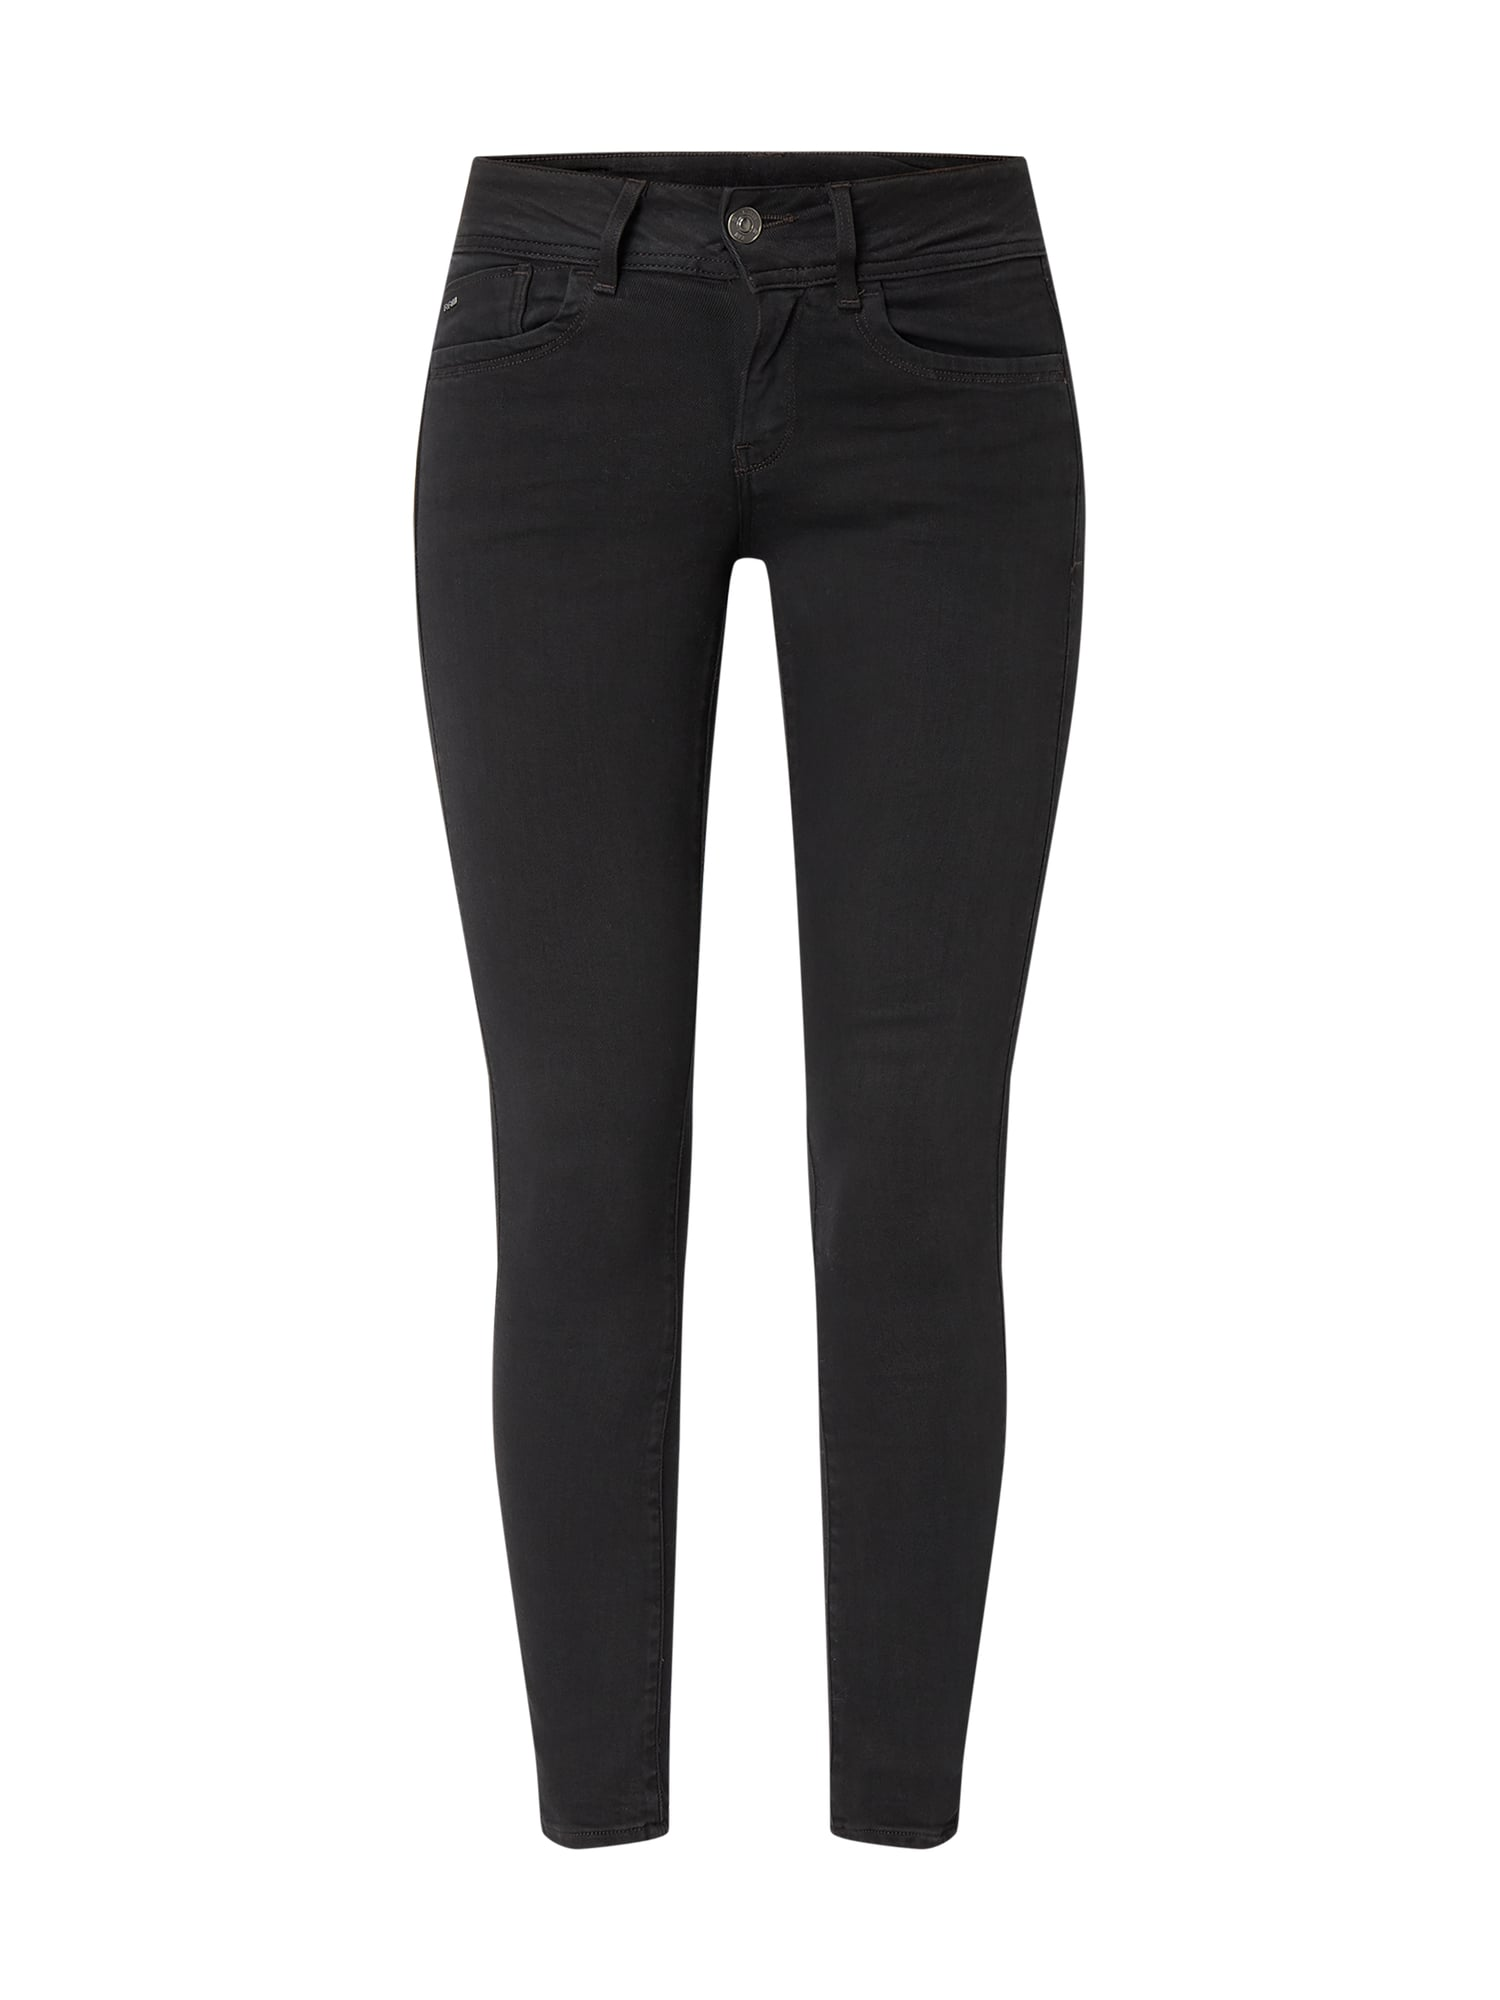 27b145098aad9a G-STAR-RAW Coloured Skinny Fit Jeans in Grau / Schwarz online kaufen  (9904033) ▷ P&C Online Shop